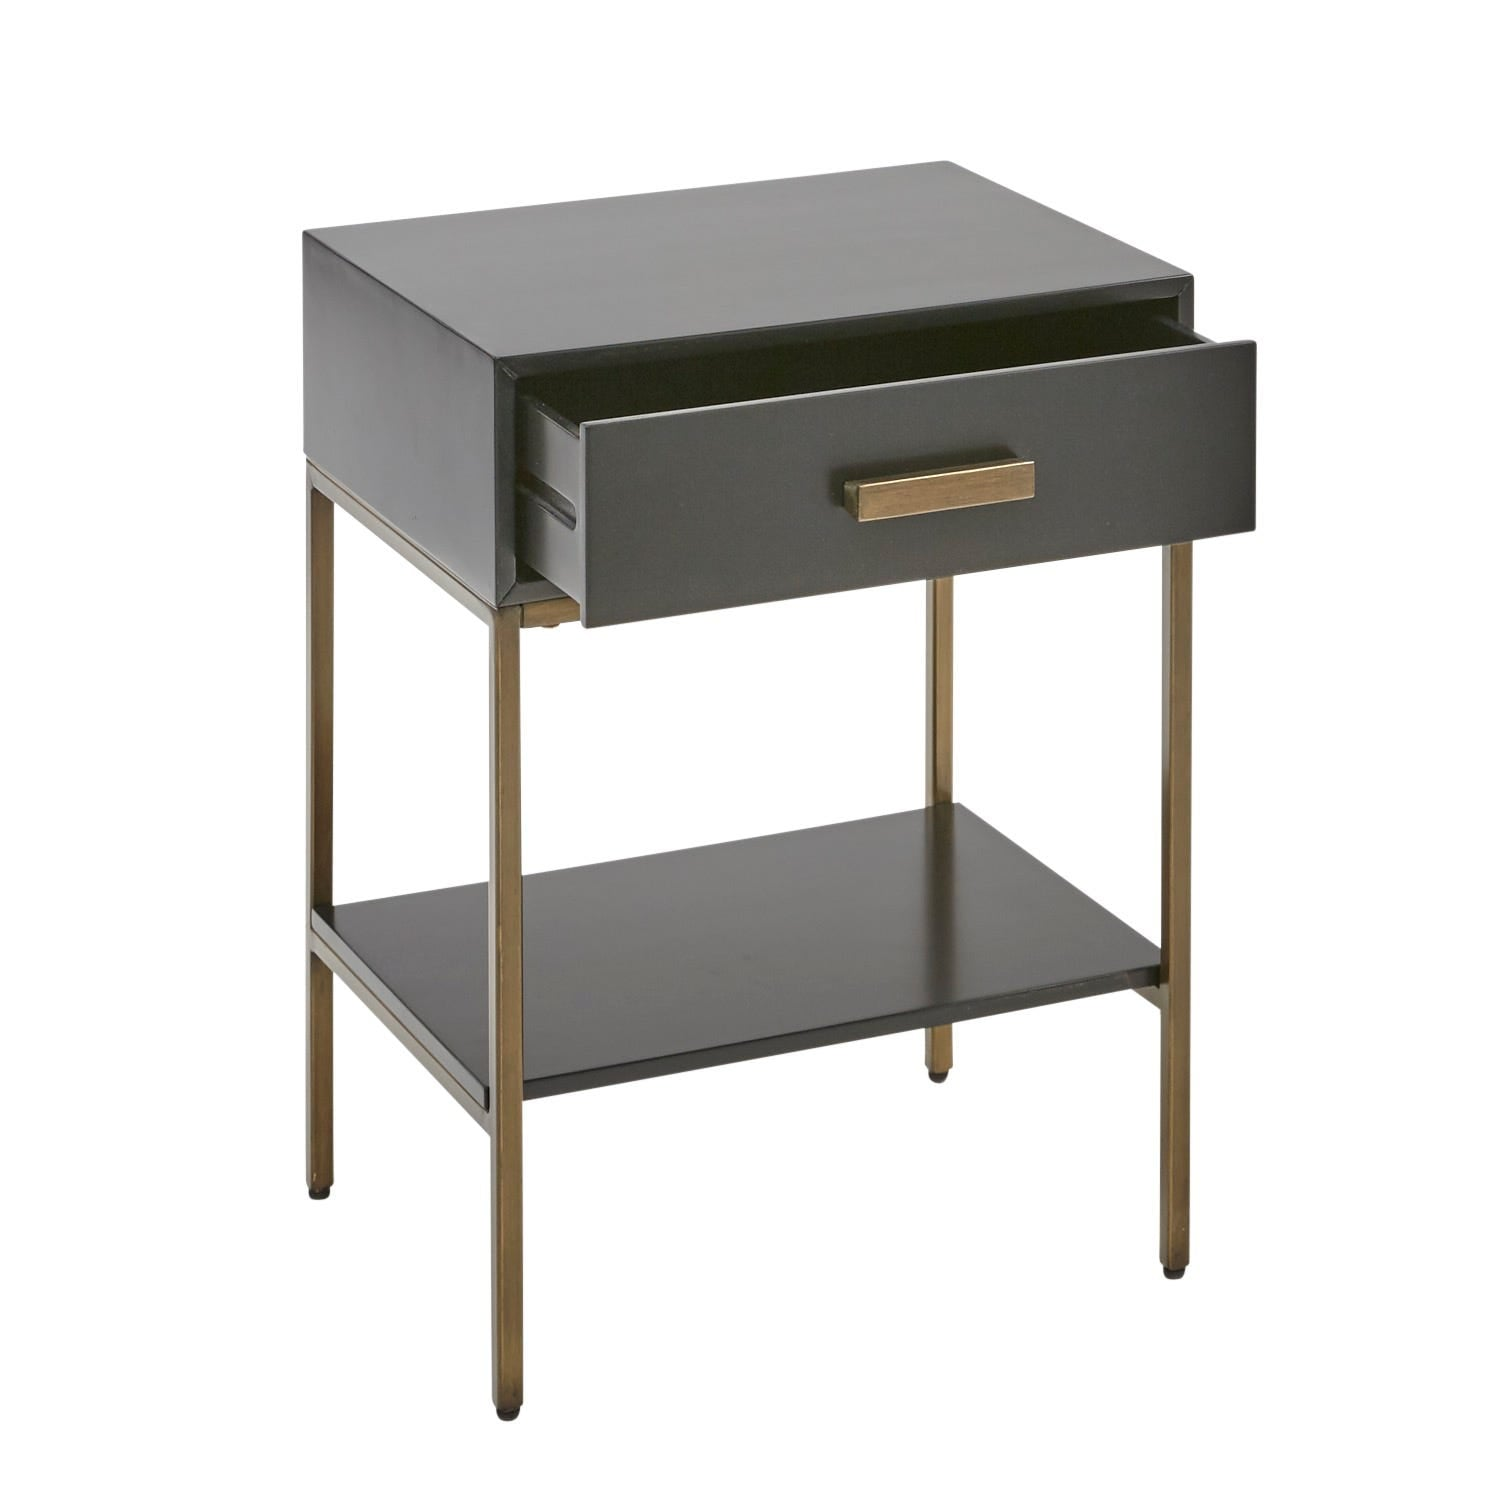 Katy Black And Gold Nightstand Small Space Cramping Your Style This Pier 1 Furniture Is Fit For A Tight Squeeze Popsugar Home Photo 36